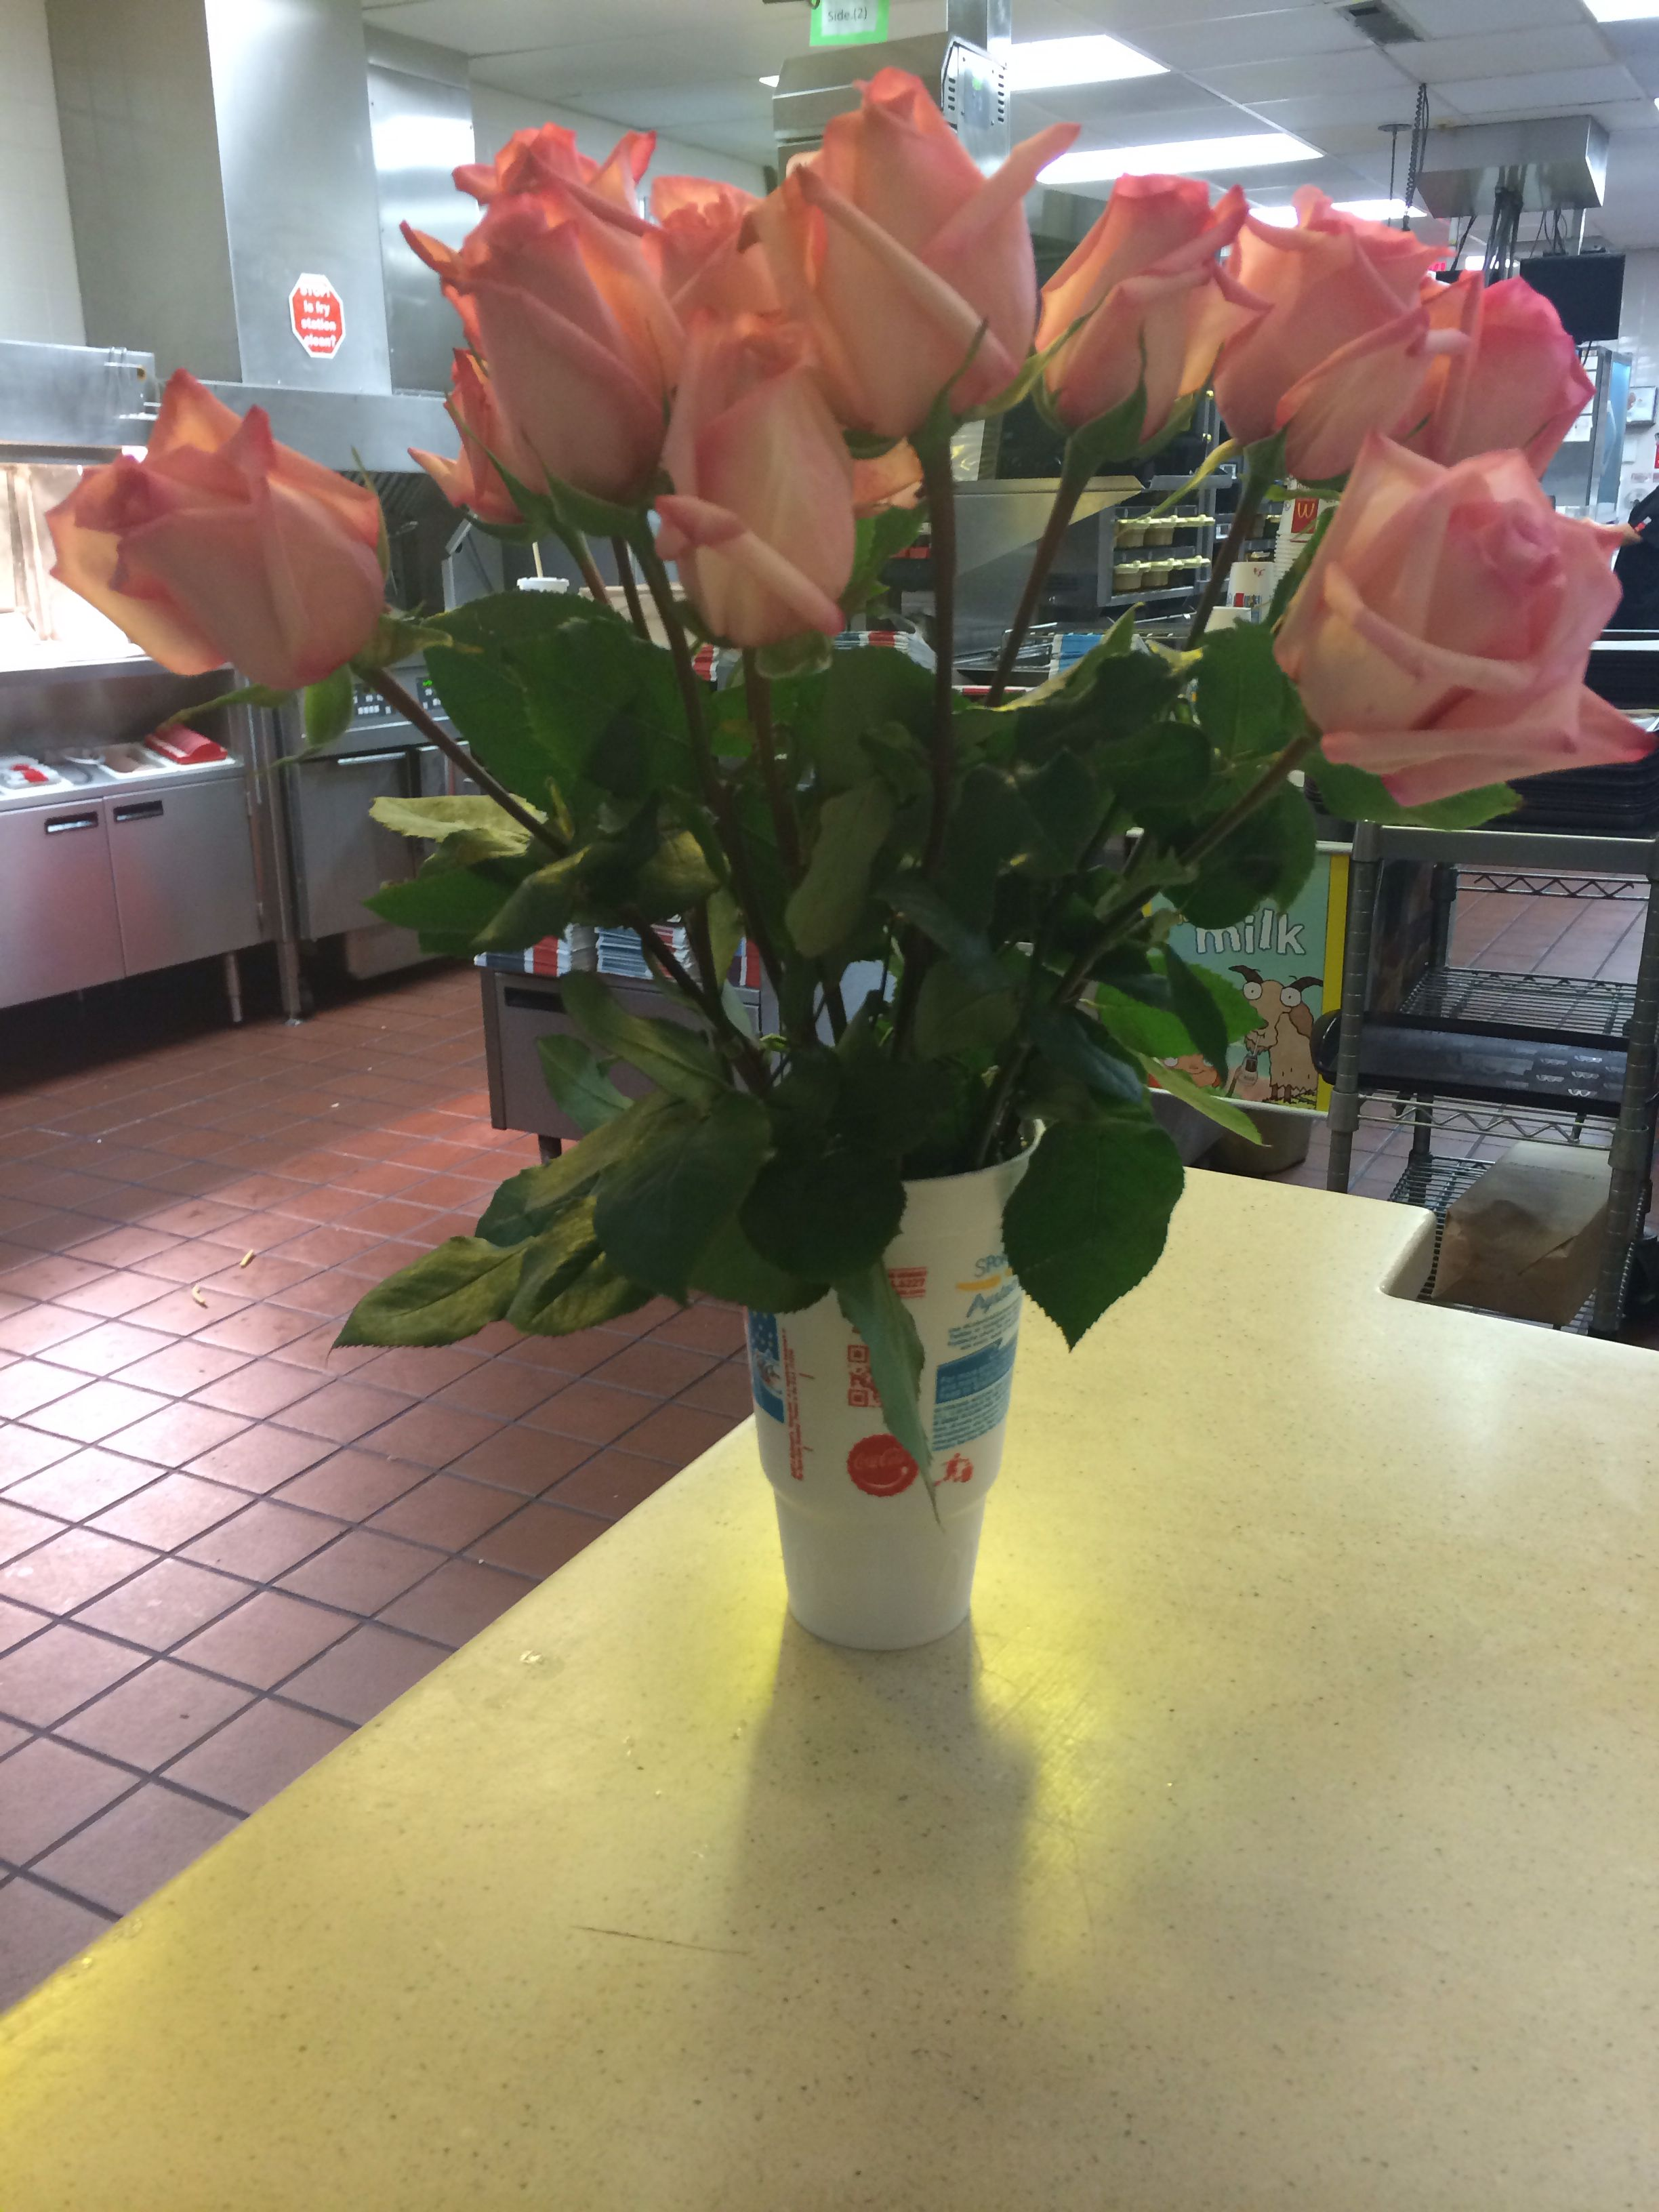 """Some guy came through the drive thru asked me what my name was.  I rudely replied """"my name tag says rose"""".  Then later someone gives my manager a dozen roses in the drive thru for a girl named rose.  I am taken proudly but it was a sweet thought!"""